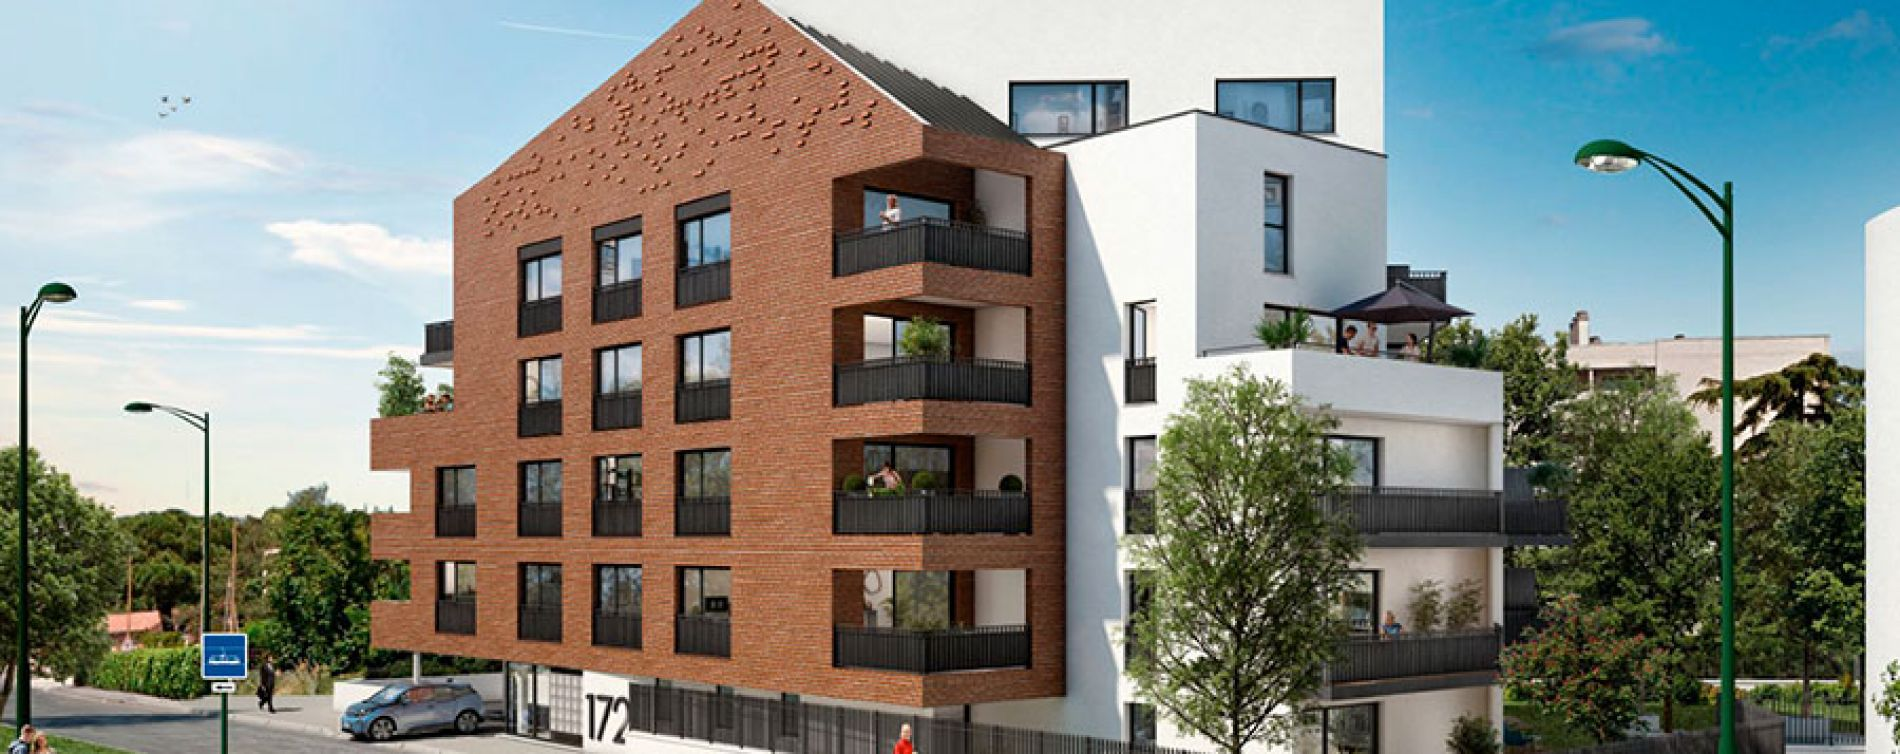 Plaza garonne toulouse programme immobilier neuf n 213005 for Appartement atypique haute garonne